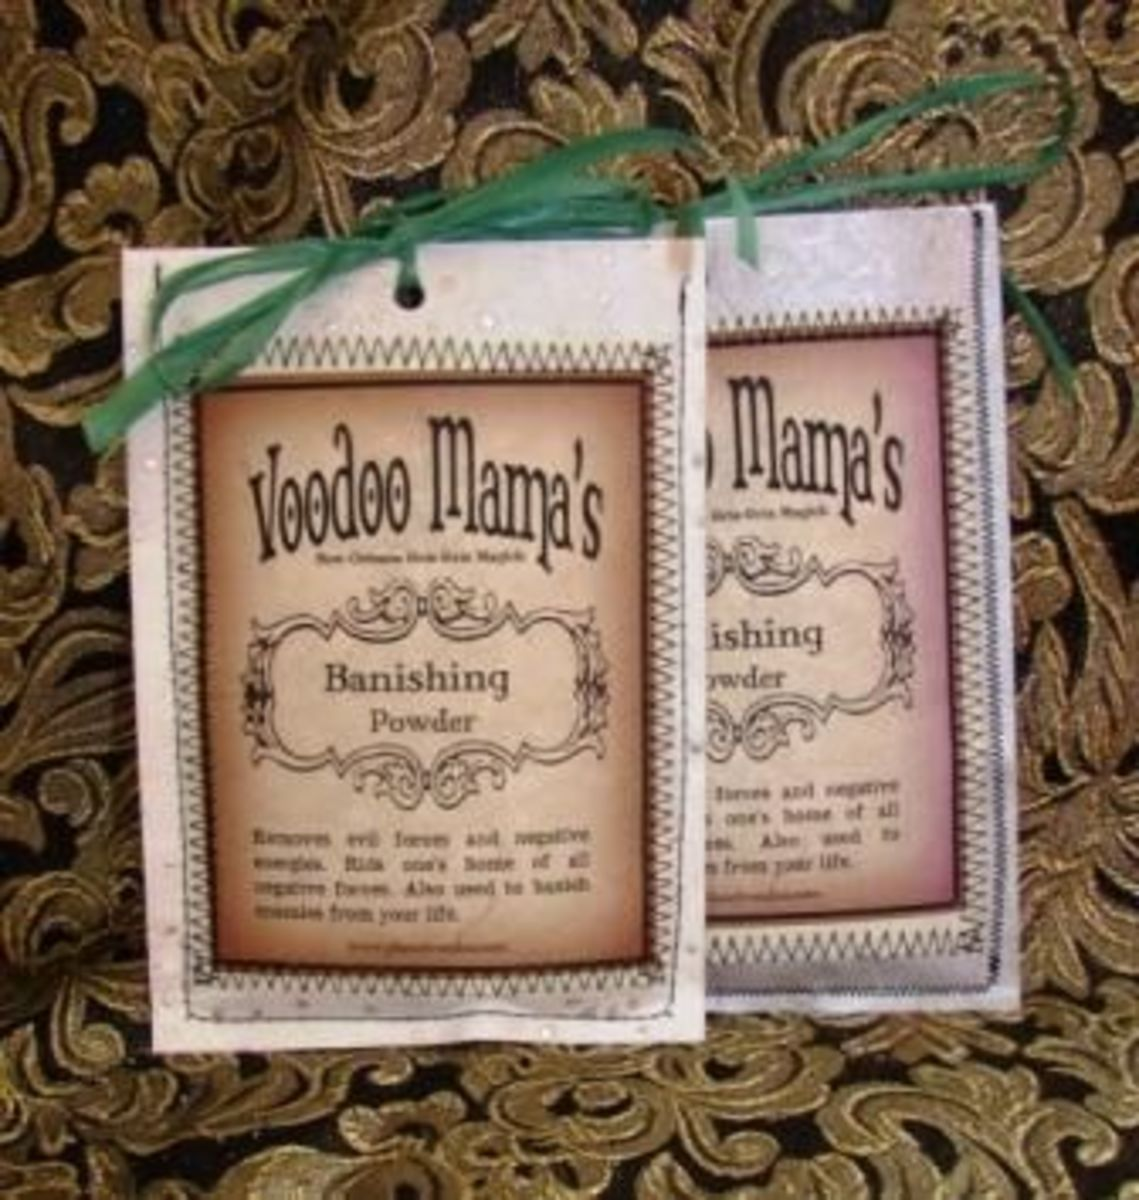 Voodoo Mama's Banishing Powder